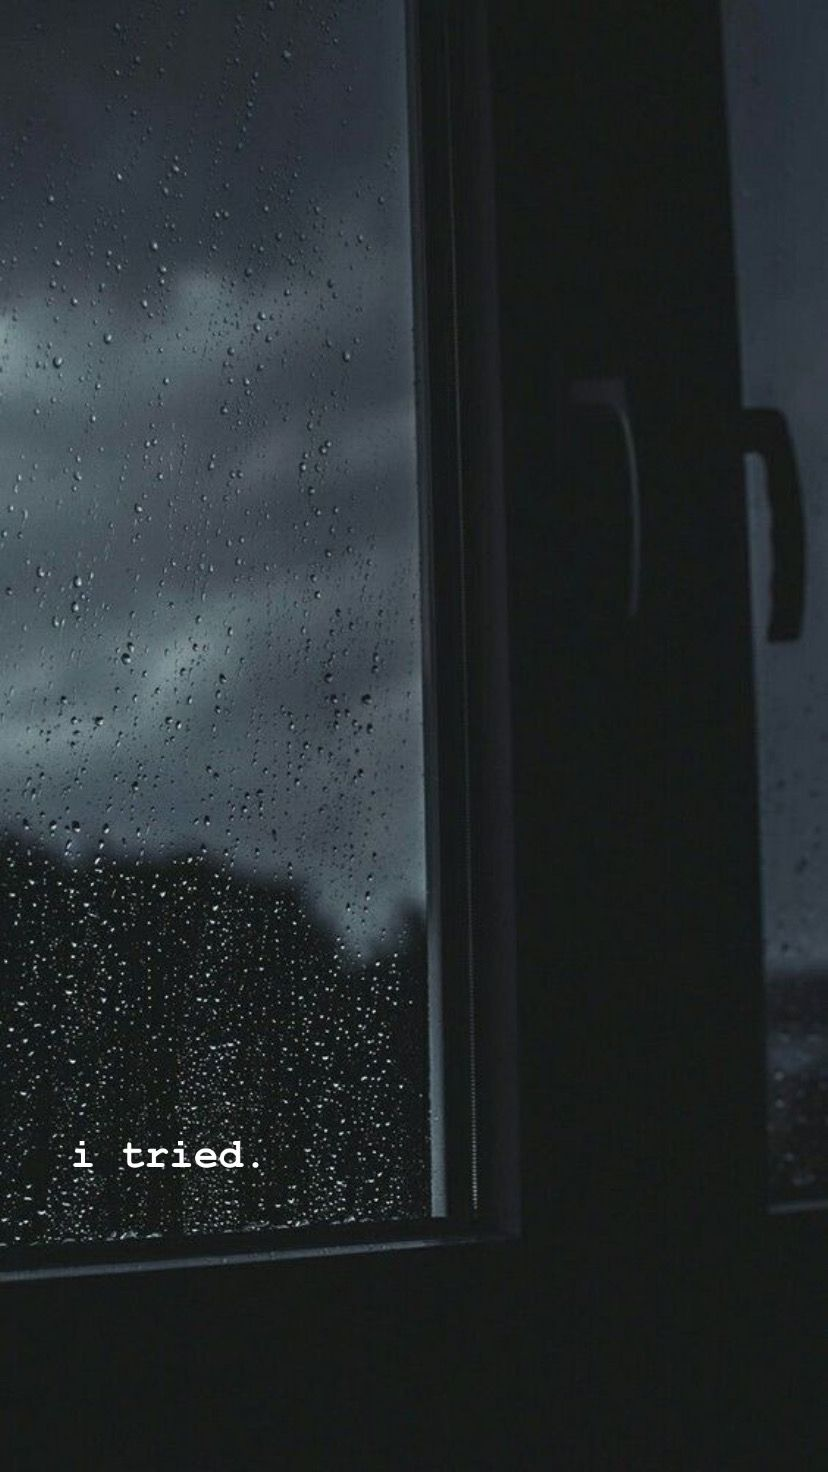 aesthetic rain wallpaper Unique iphone wallpaper Rain 828x1472